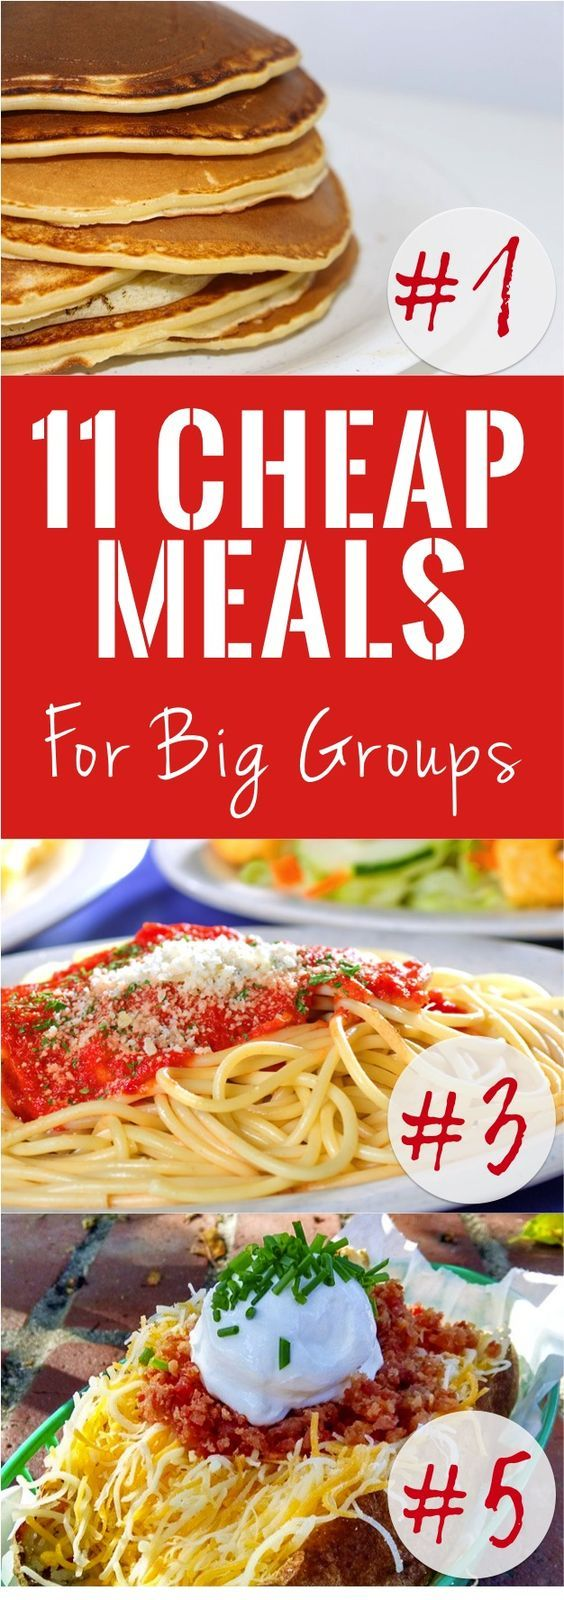 Cheap Meals For Feeding Large Groups Food For A Crowd Cooking For A Crowd Breakfast For A Crowd